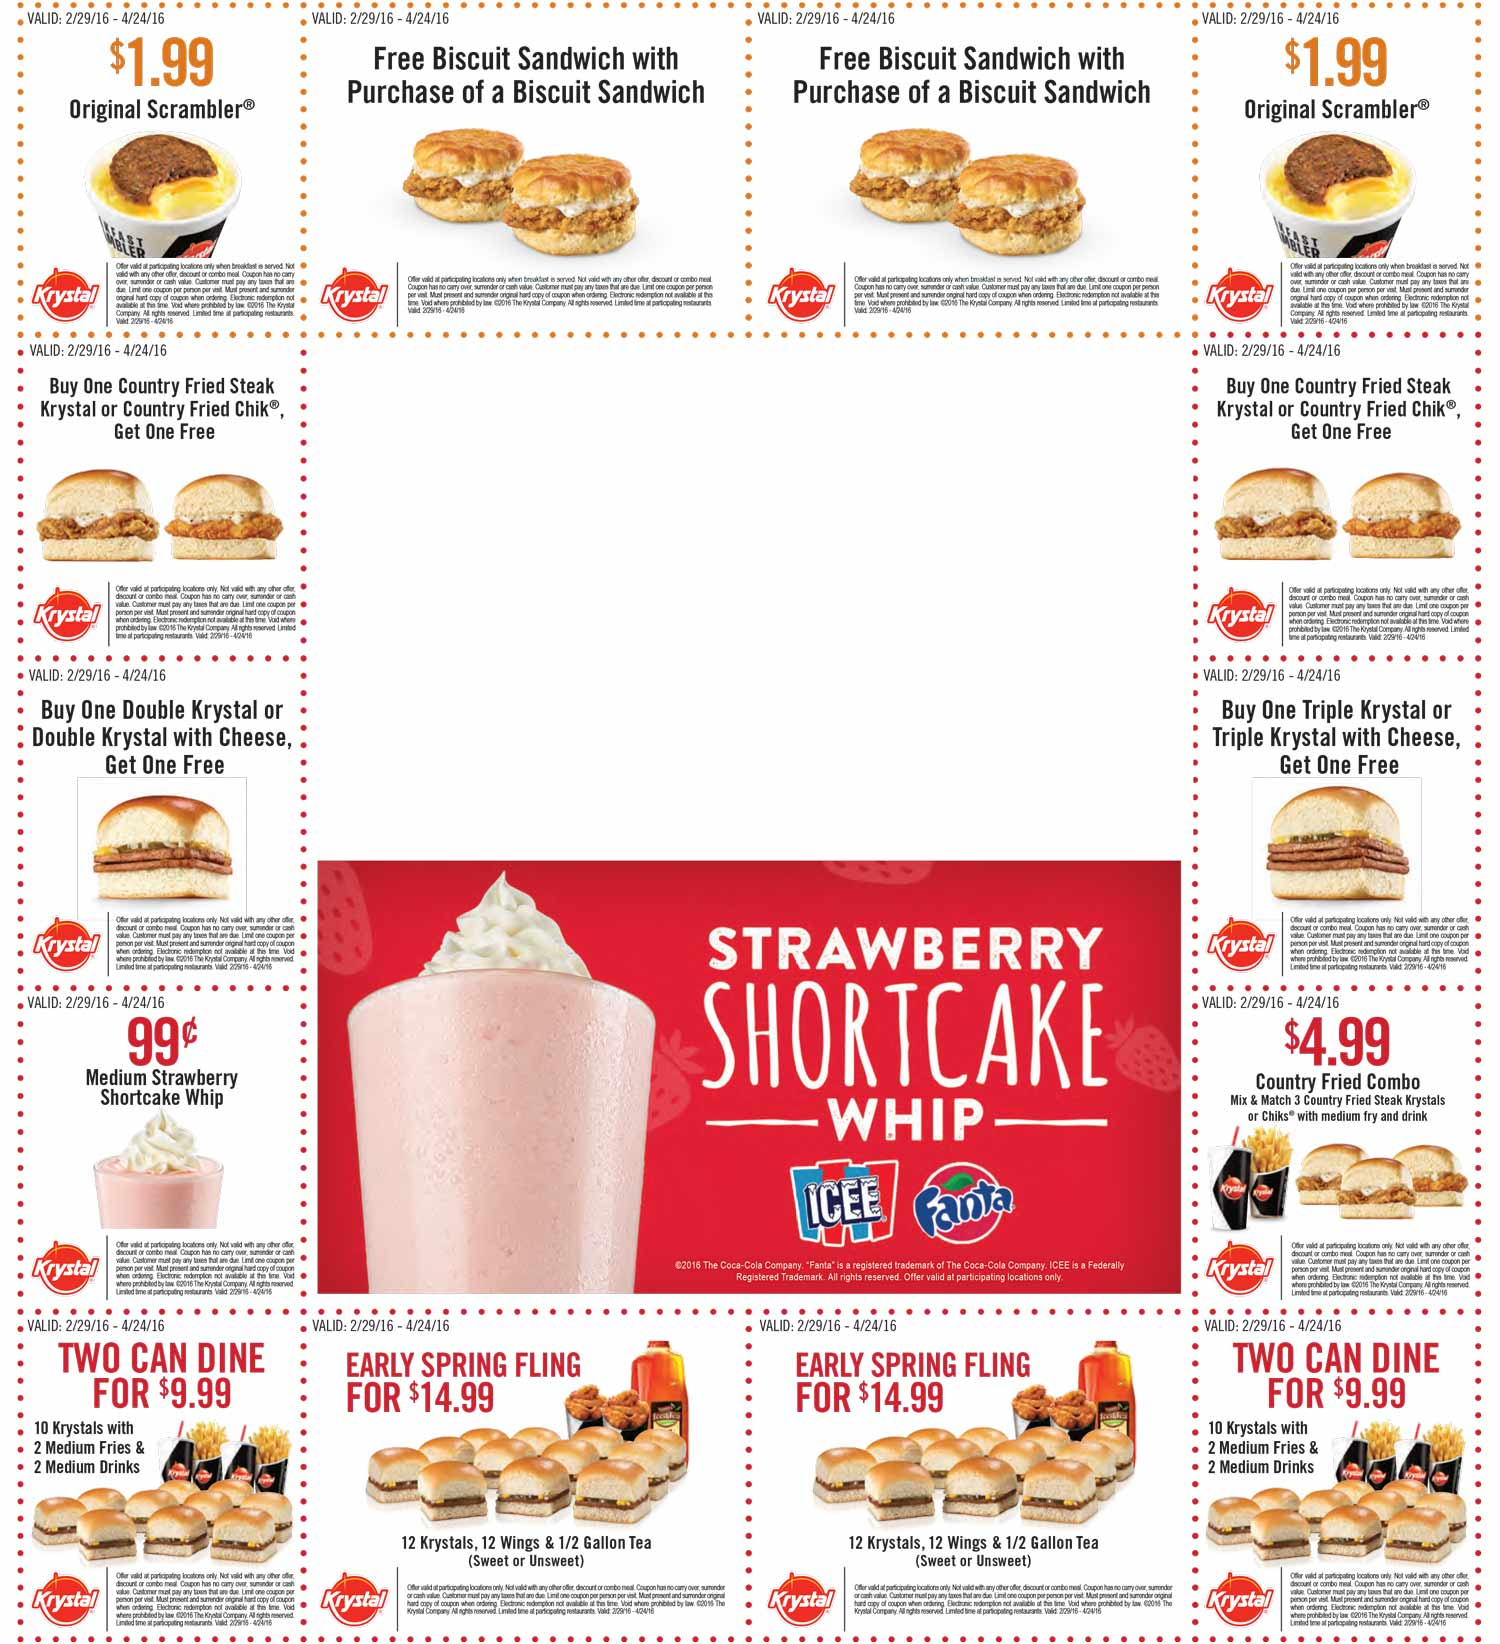 Krystal Coupon October 2016 Various two-for-one deals at Krystal restaurants